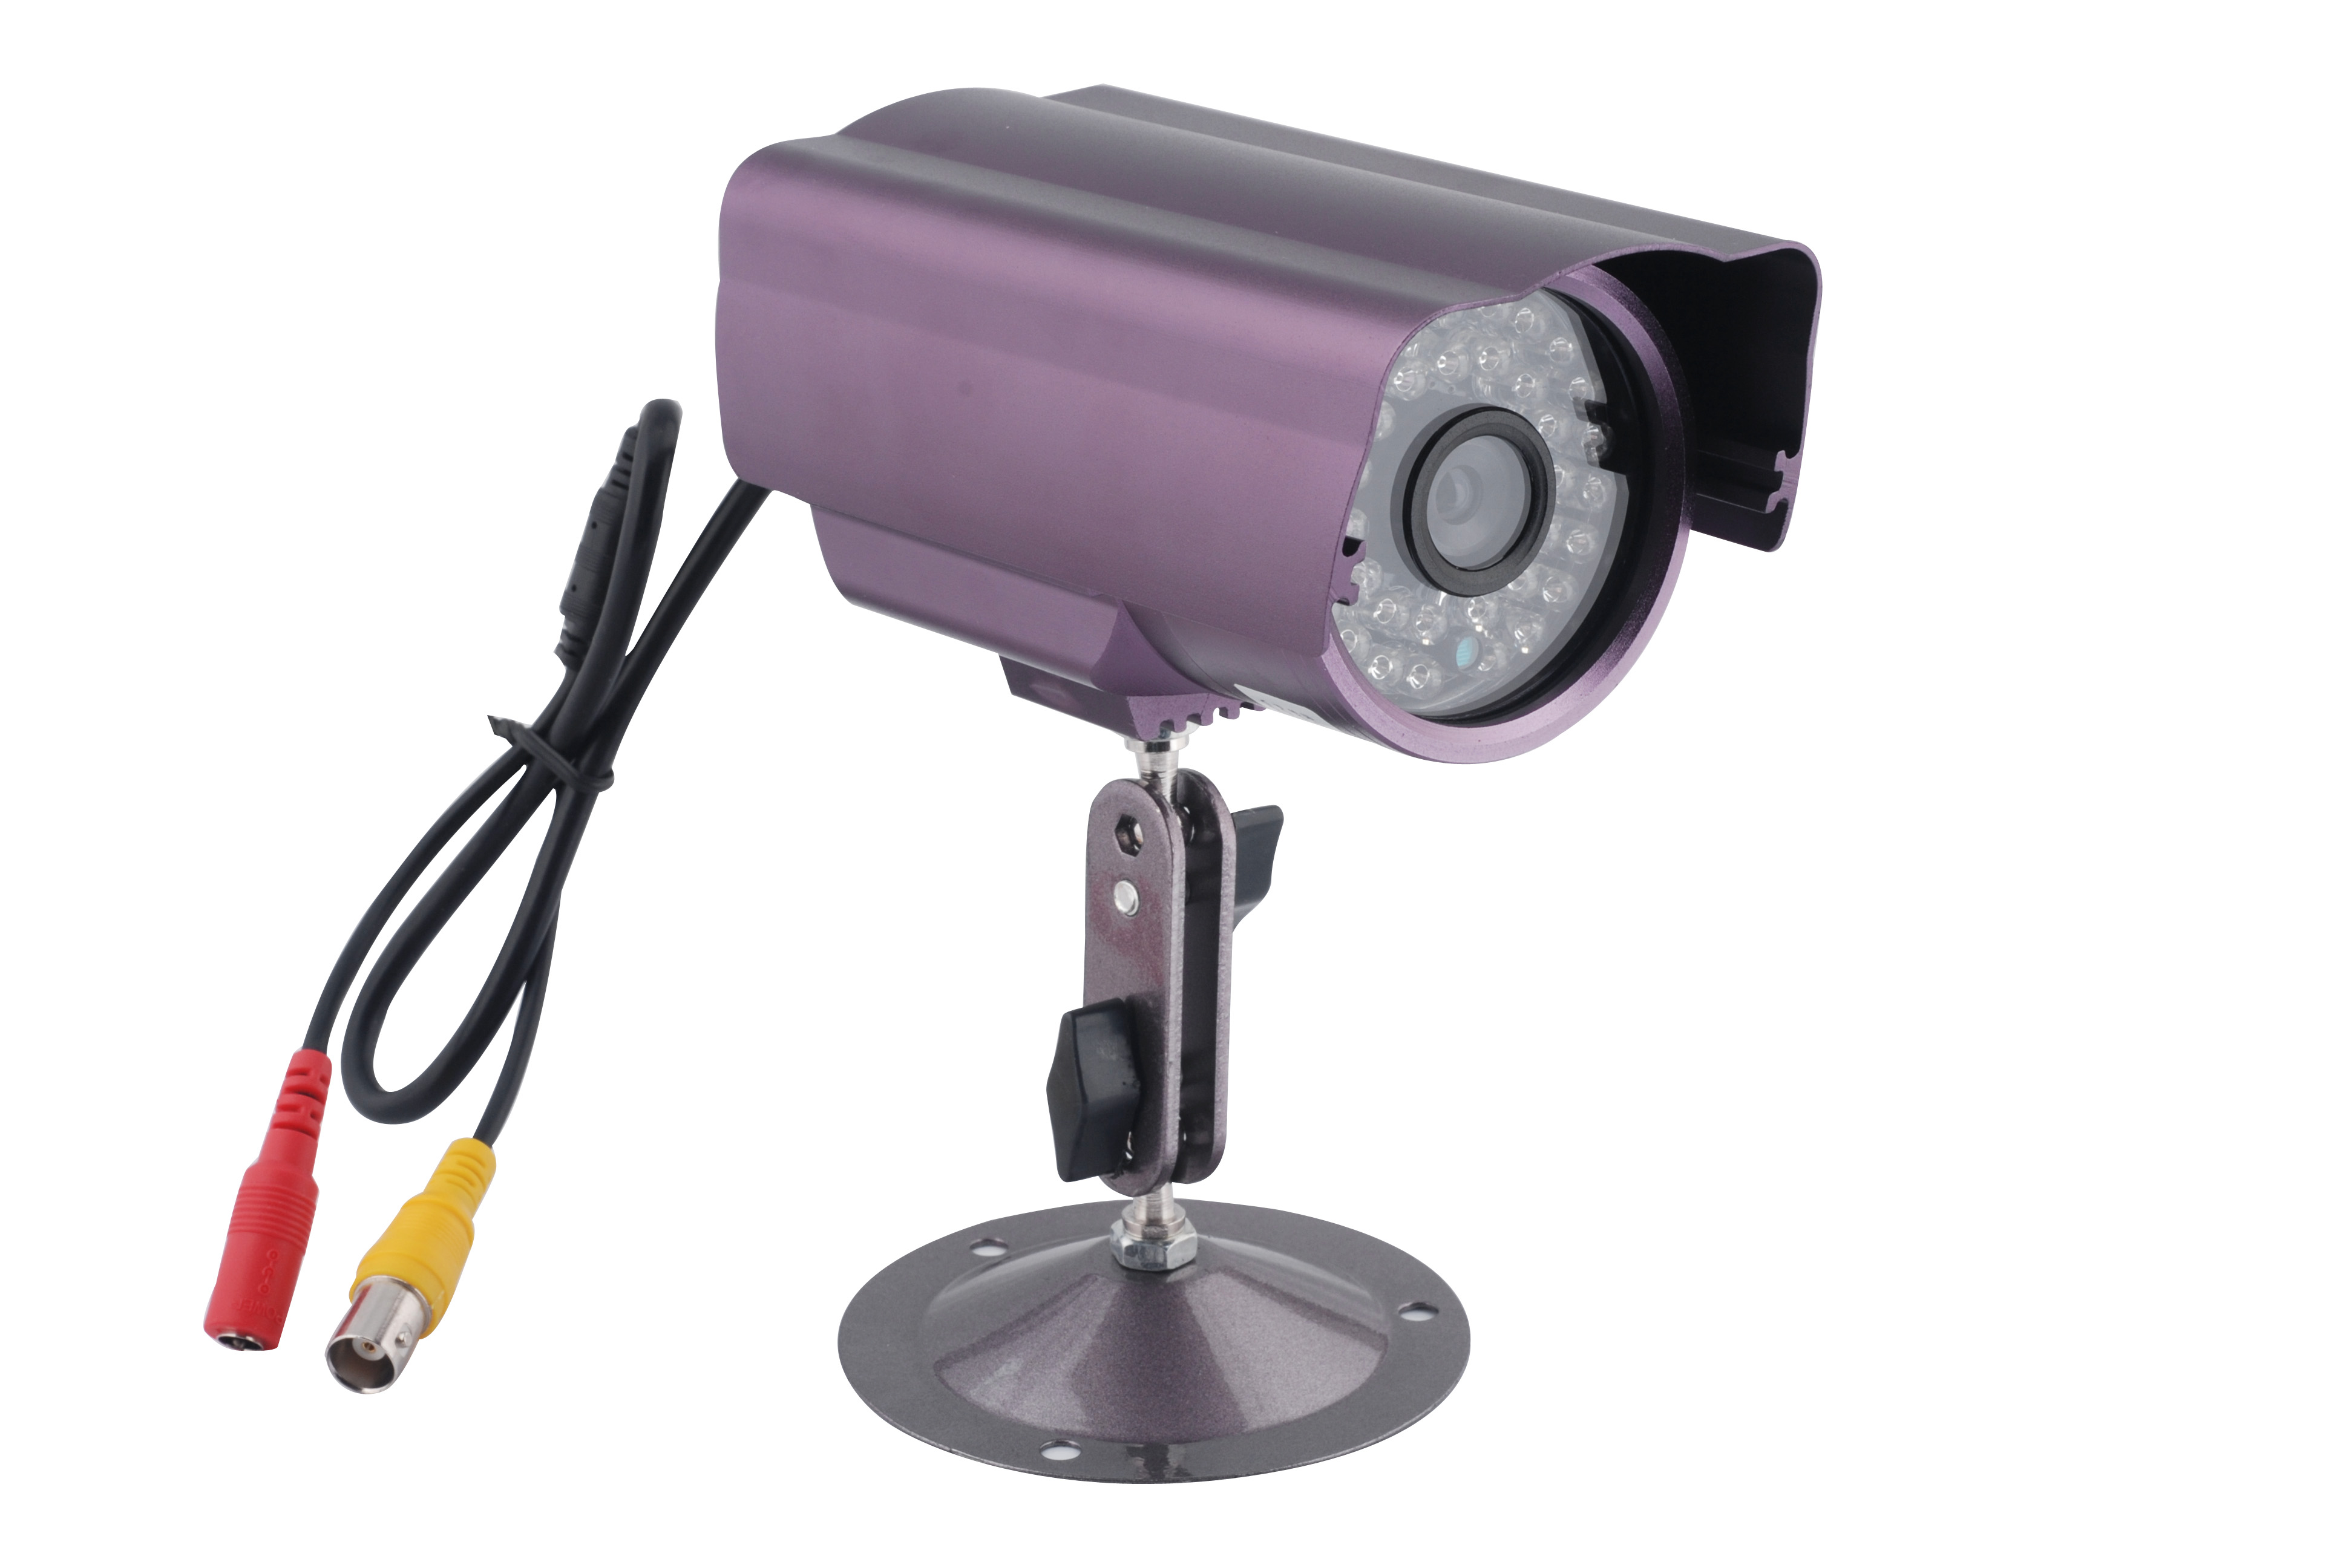 Caméra CCD 1/4 SONY AGW92 420 TVL 36 LED infra-rouges